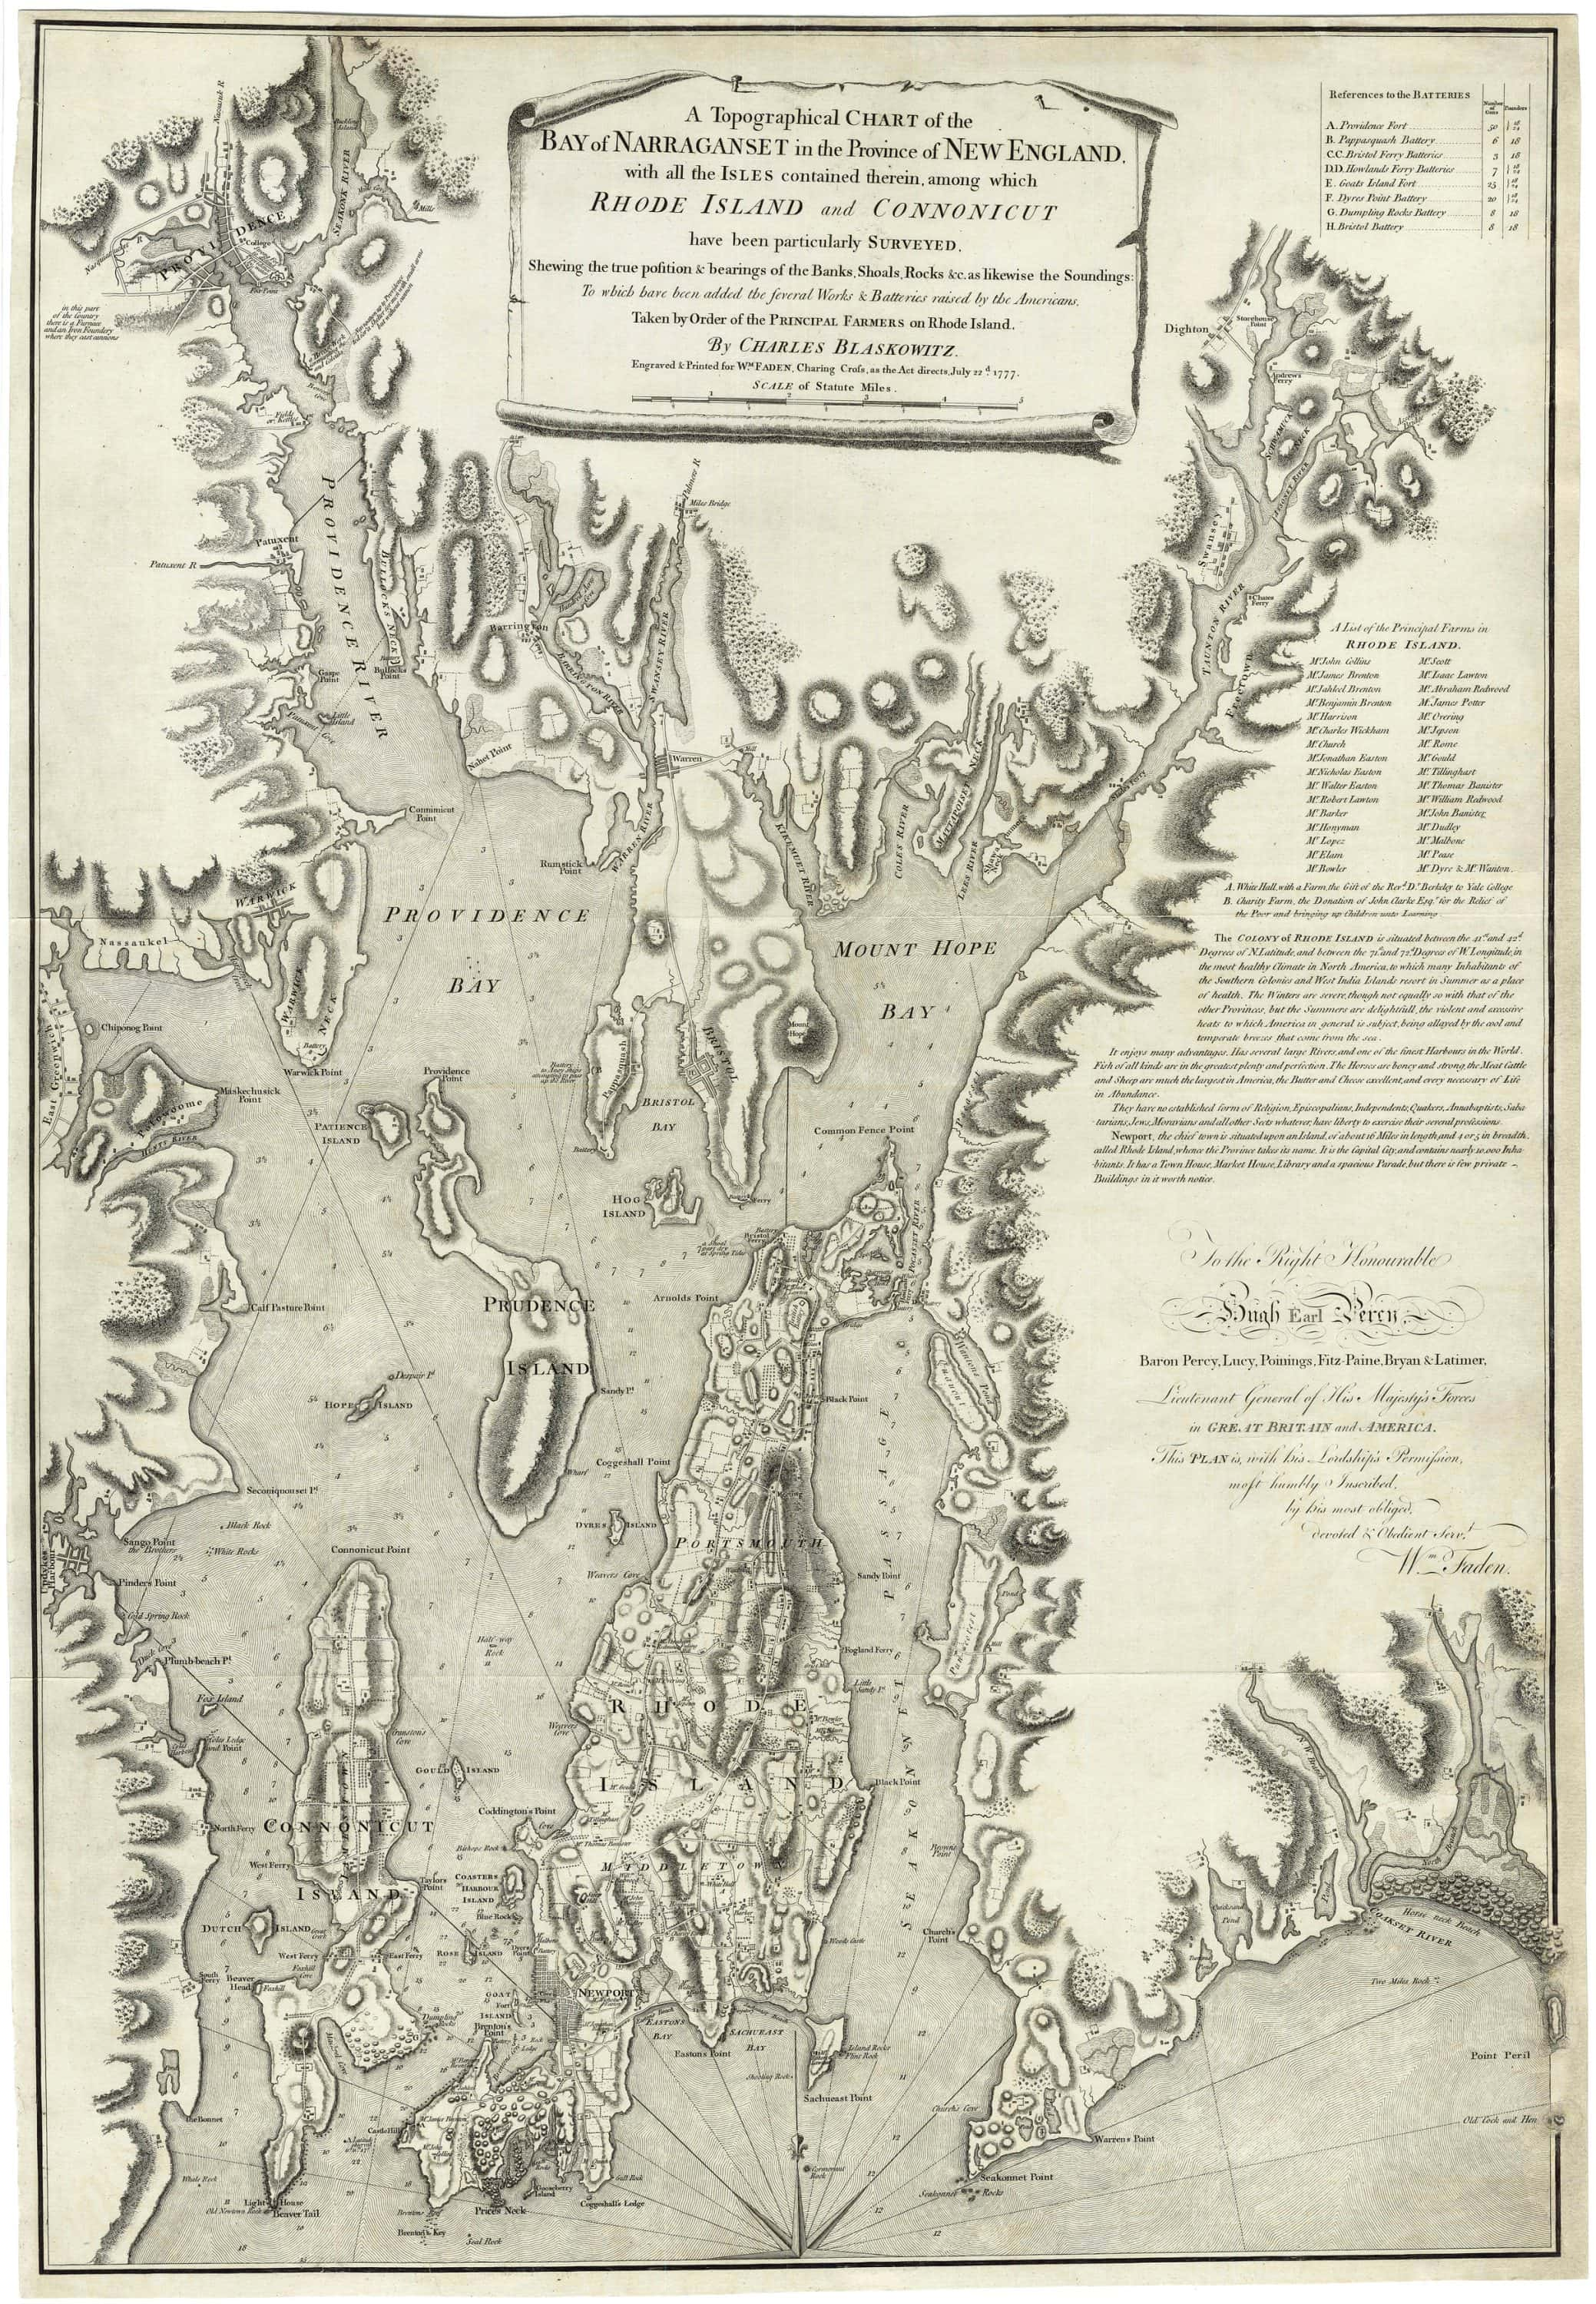 The finest 18th-century chart of Narragansett Bay - Rare ... on triangular trade map, proclamation of 1763 map, battle of bunker hill map, texas independence map, john adams map, white house map, america map, deep south map, new york map, declaration independence print out, the dark tower map, independence day map, english official language map, american revolution map, checks and balances map, articles of confederation map, founding fathers map, balfour declaration map, education map, seal island map,